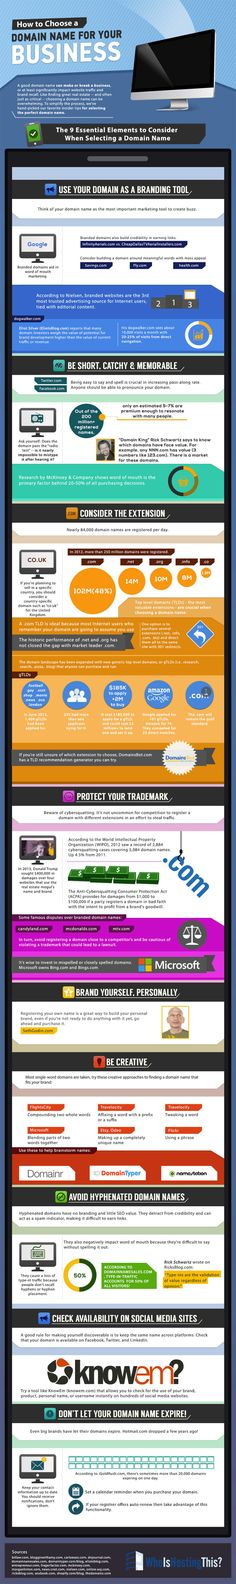 9 Steps to Choosing an Awesome Domain Name for Your New Website #Infographic